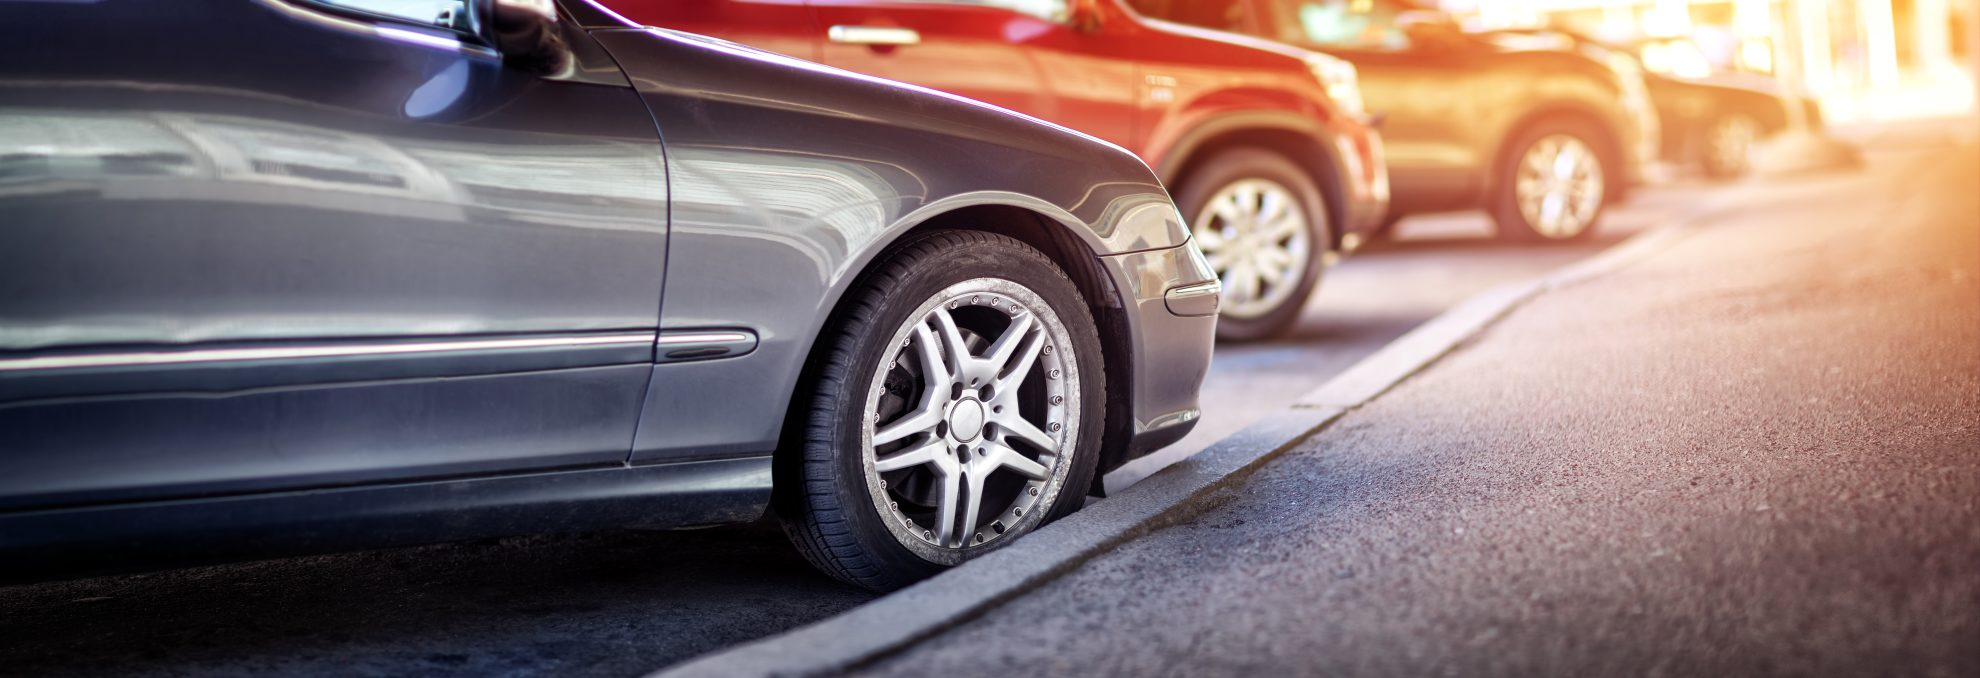 cars lined up on curb for extended warranty